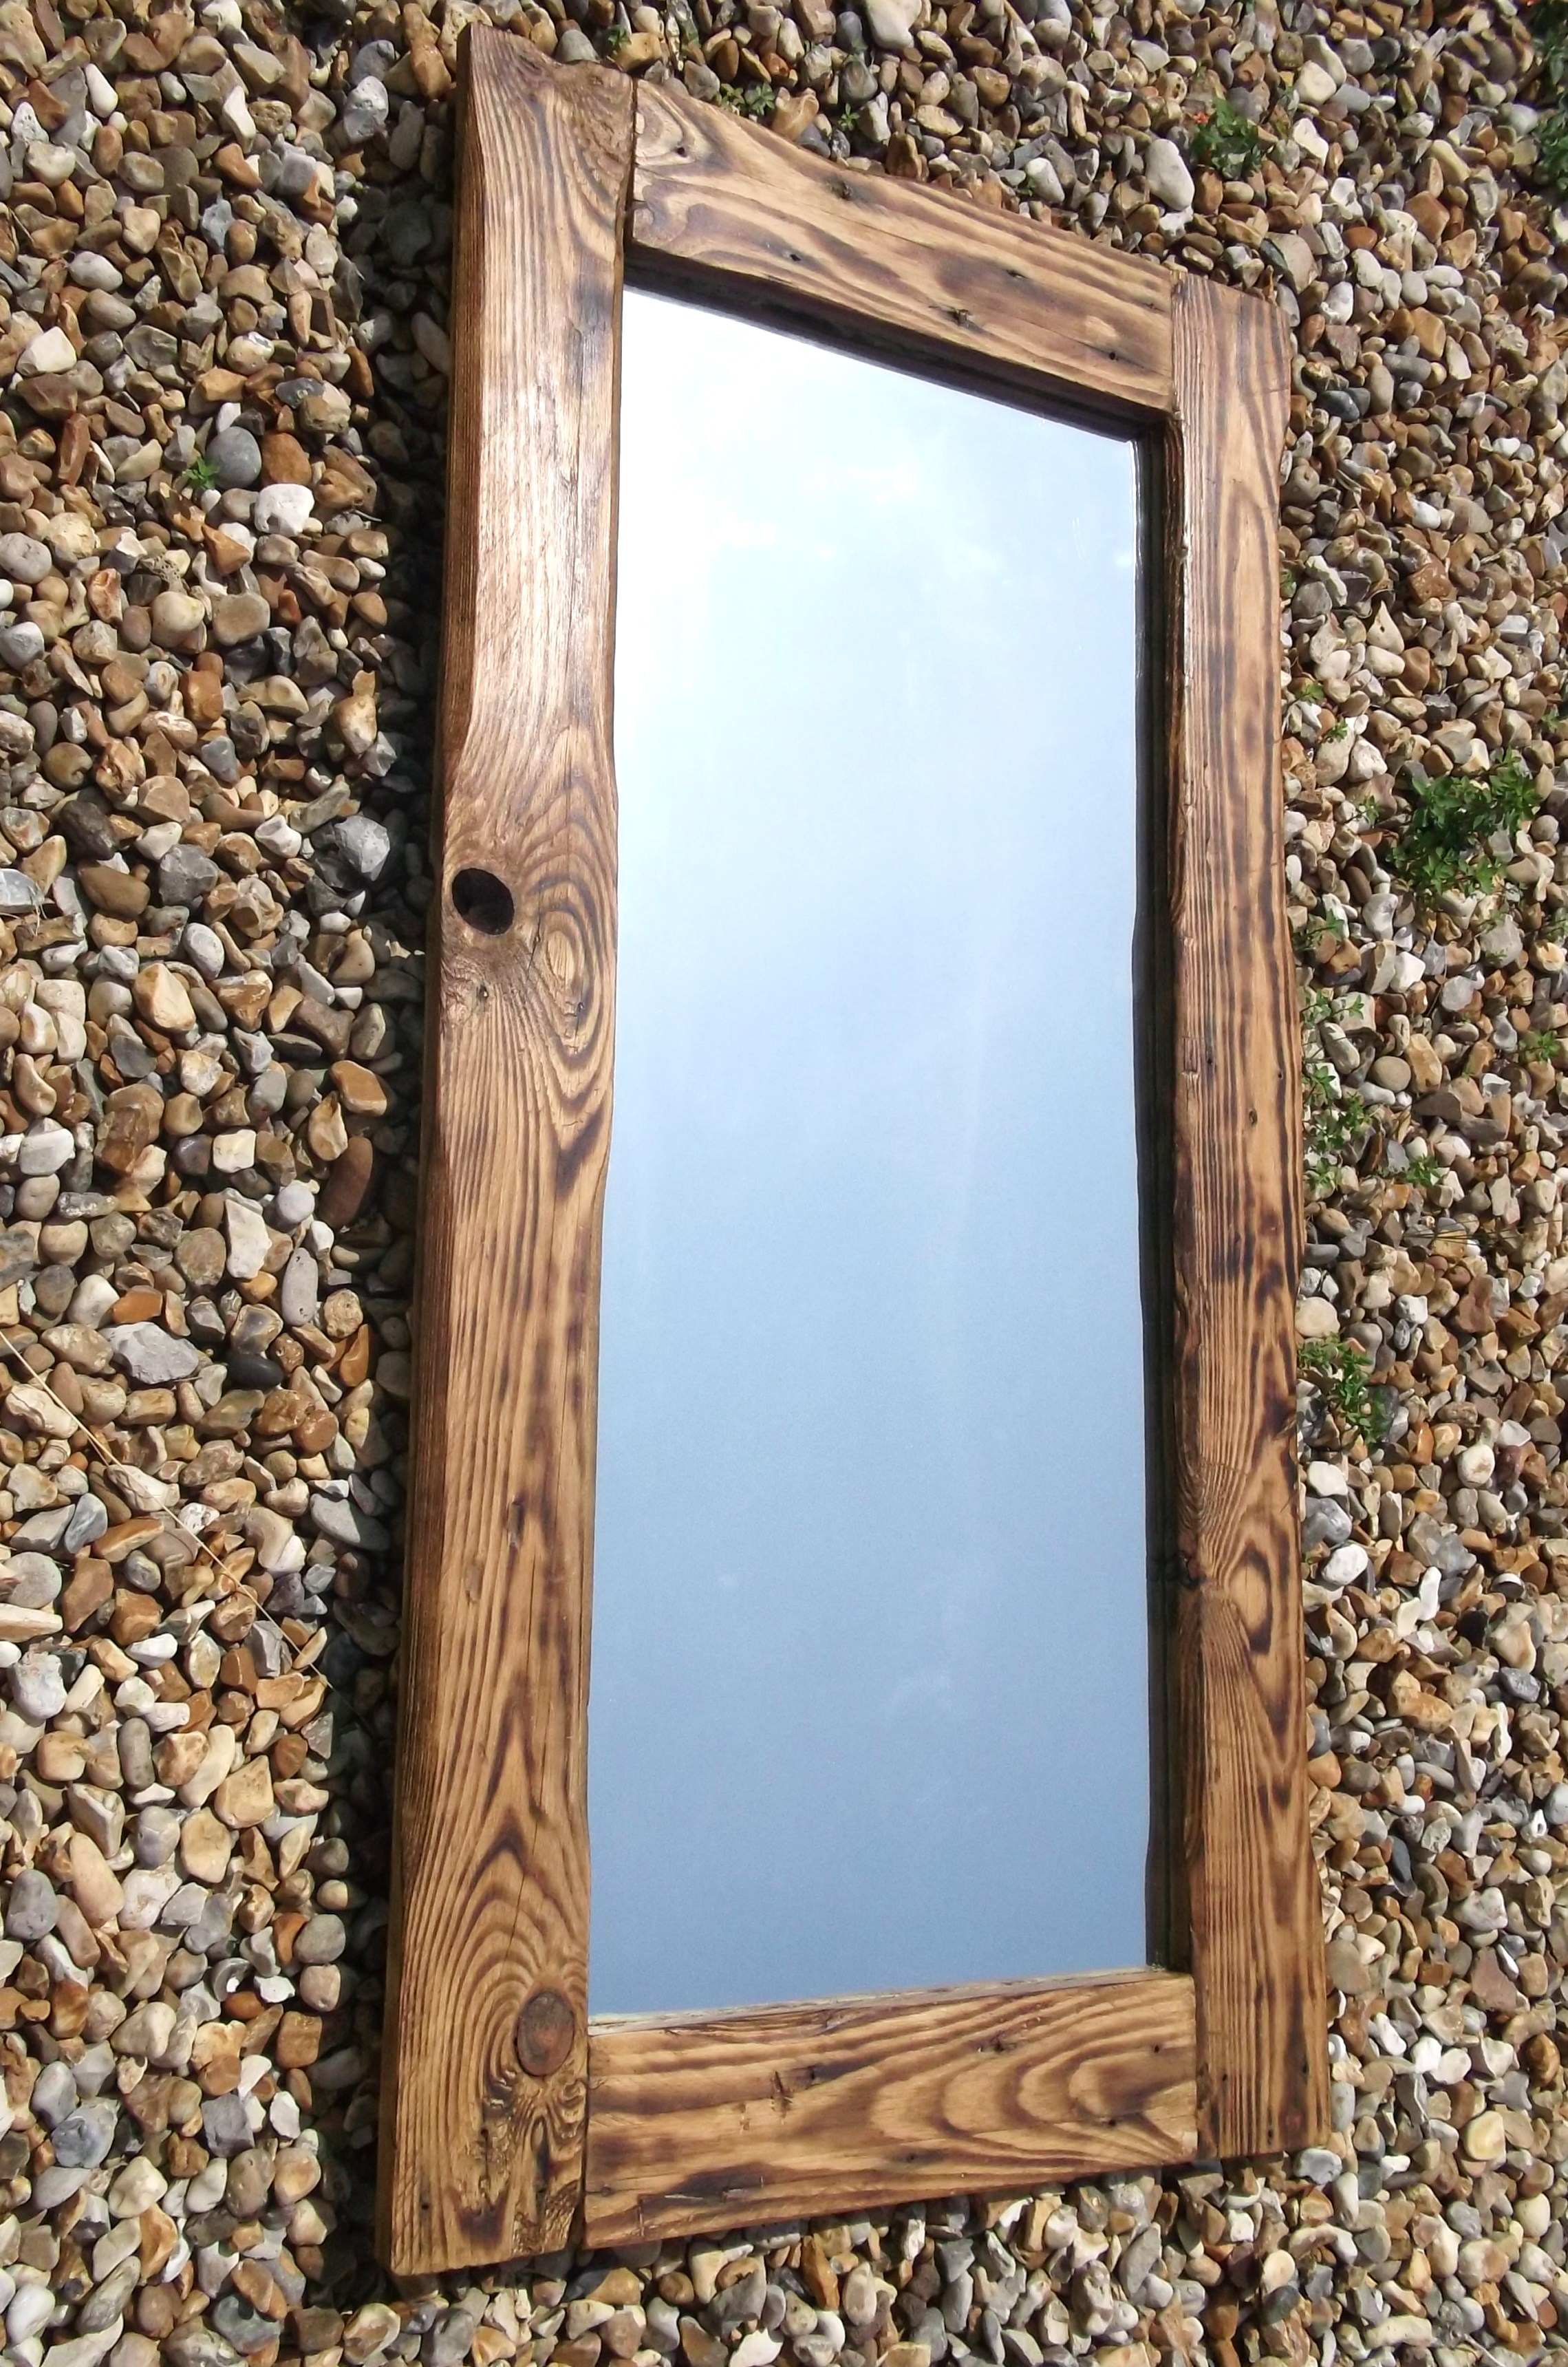 Oval Mirrors with Wood Frames | Reclaimed Wood Mirror | Wrought Iron Bathroom Mirrors